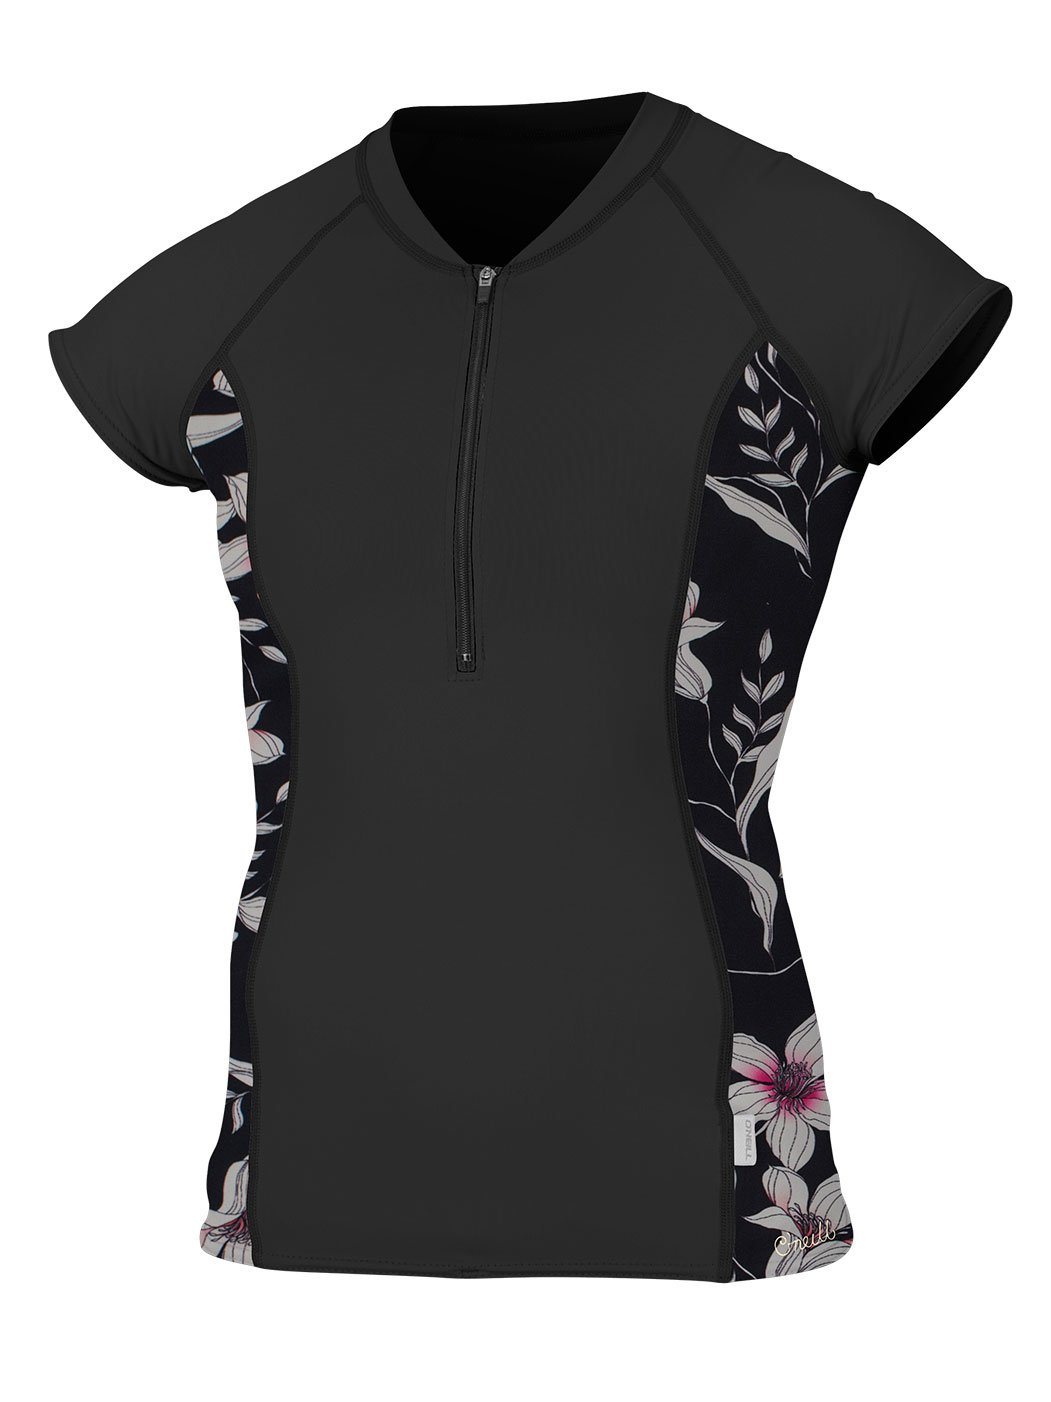 O'Neill Women's Cap Sleeve Sun Shirt Front Zip Black/Albany Floral Small